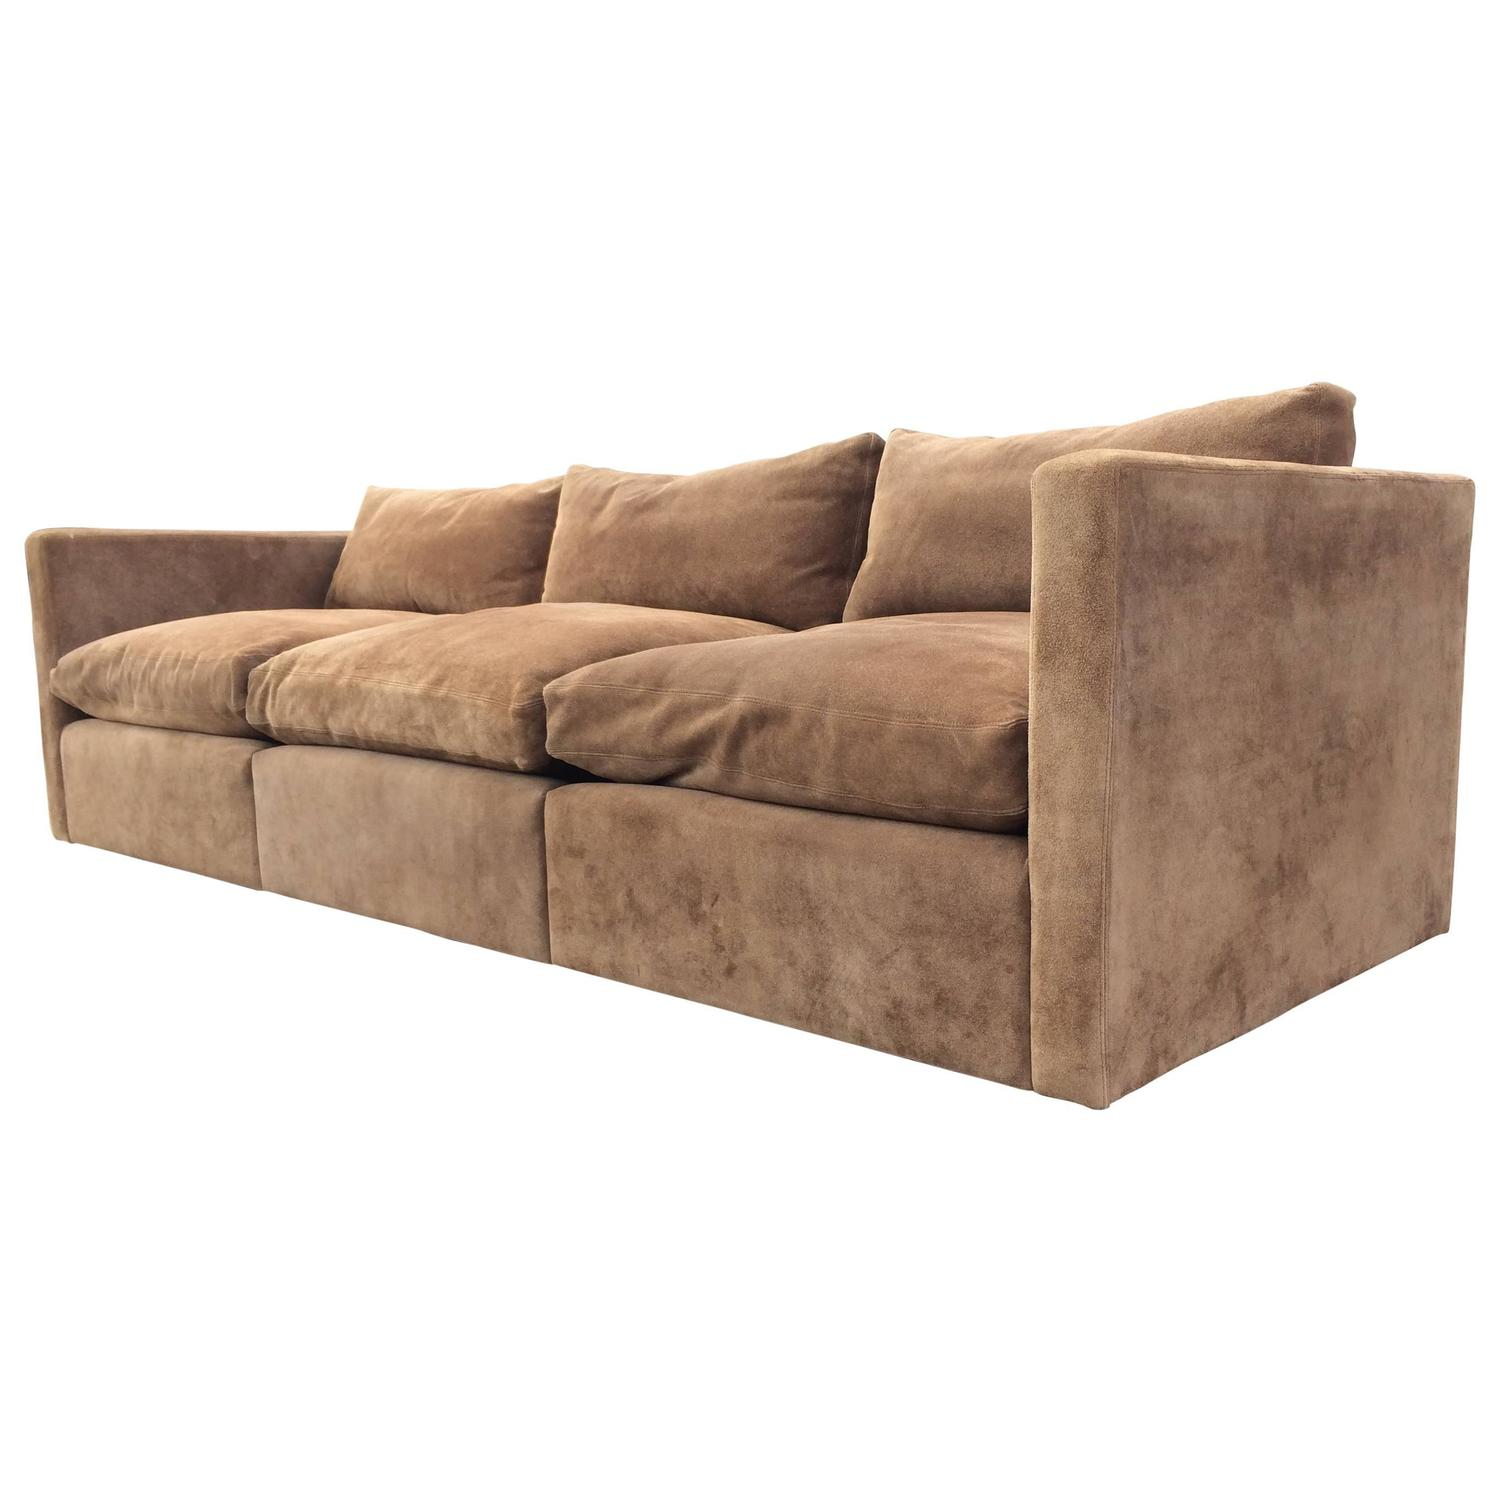 100 Sofa 26 Round Brown Lacquered The Most Inspired